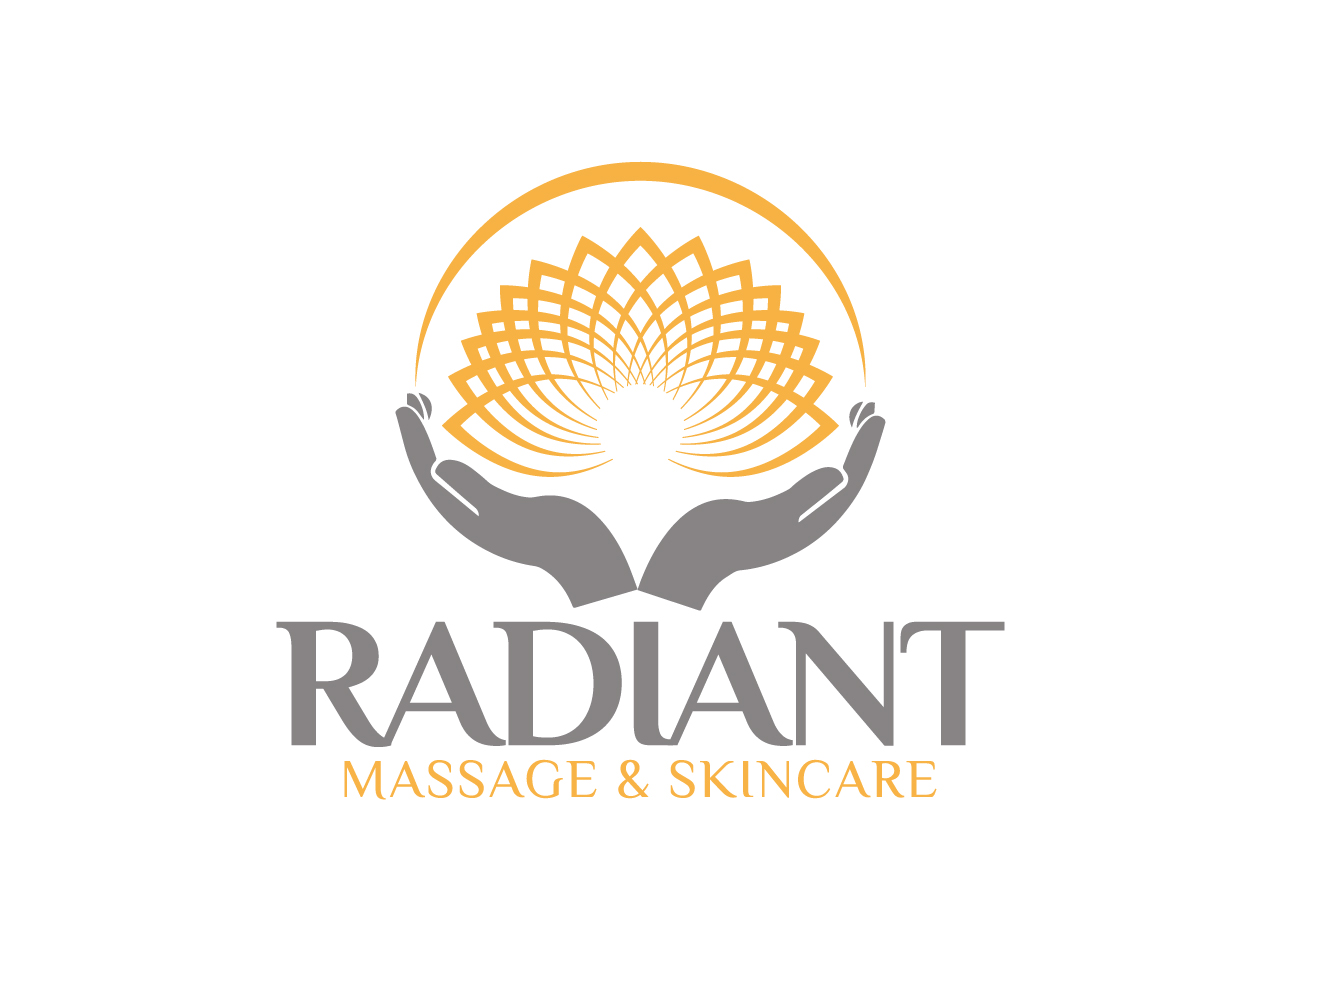 Radiant Massage & Skincare - Awaken Integrative Health Centers in Orlando, FL